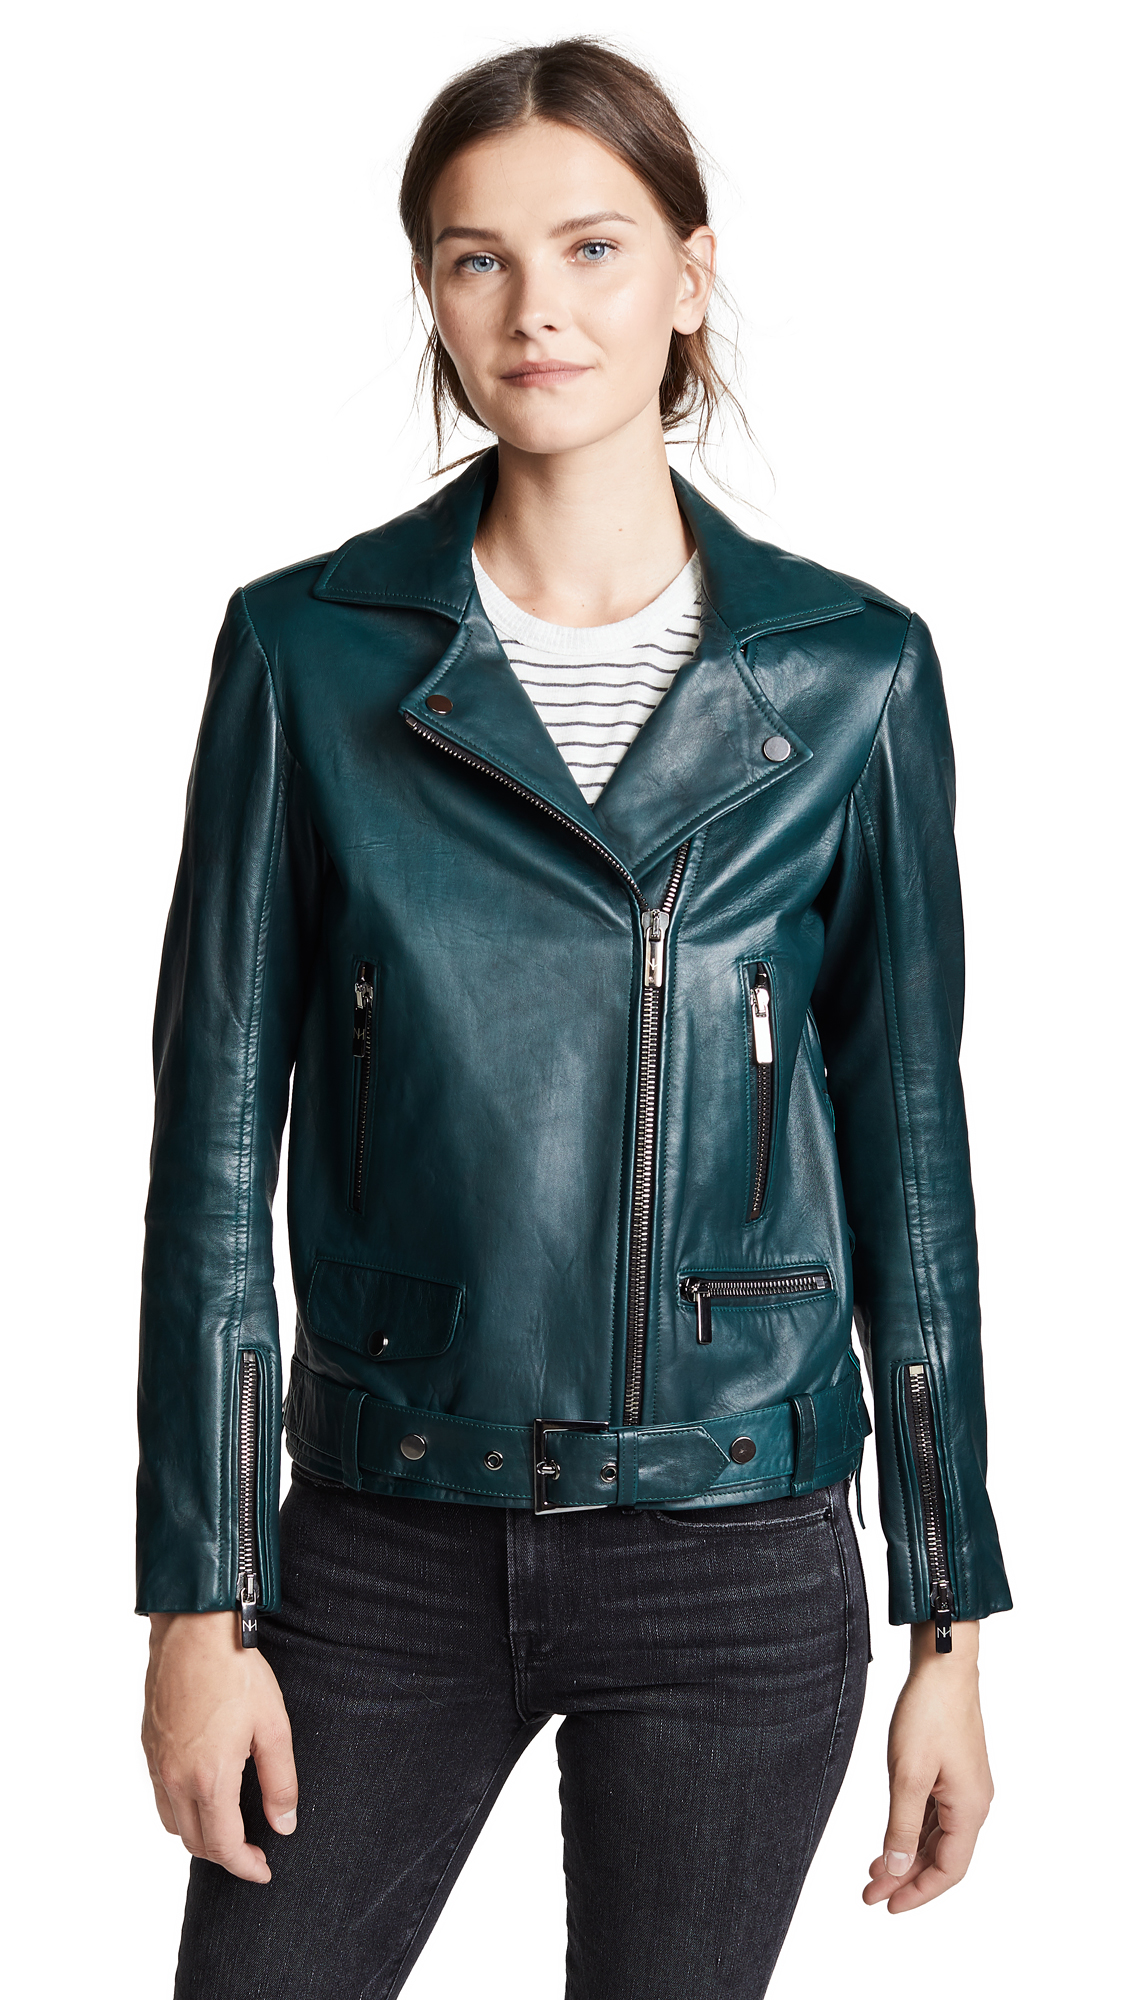 Nour Hammour Republique Leather Jacket In Emerald